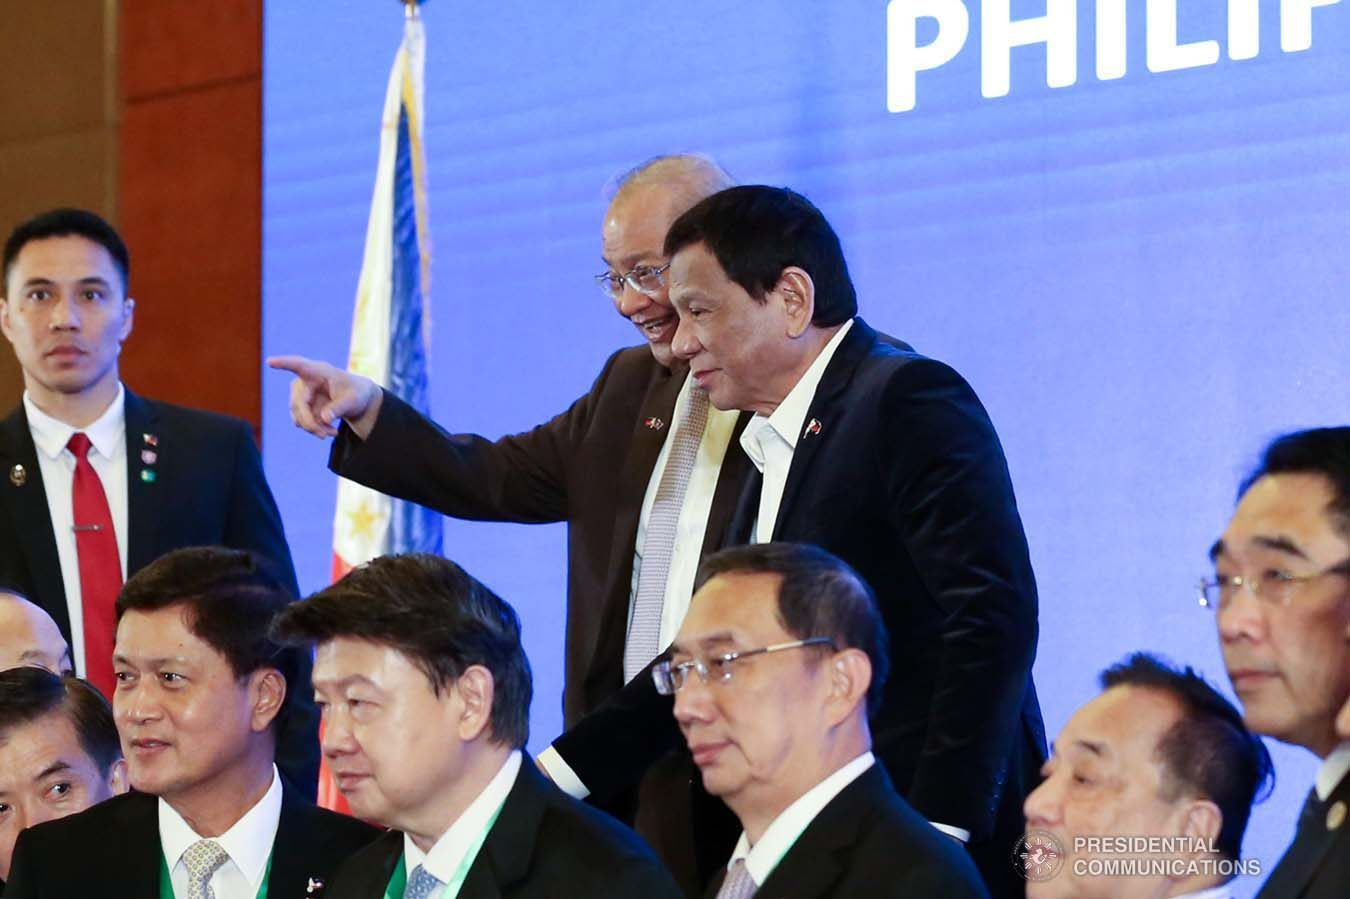 President Rodrigo Roa Duterte interacts with Philippine Ambassador to the People's Republic of China Jose Sta. Romana during the Philippines-China Business Forum at the Grand Hyatt Hotel in Beijing on August 30, 2019. RICHARD MADELO/ PRESIDENTIAL PHOTO